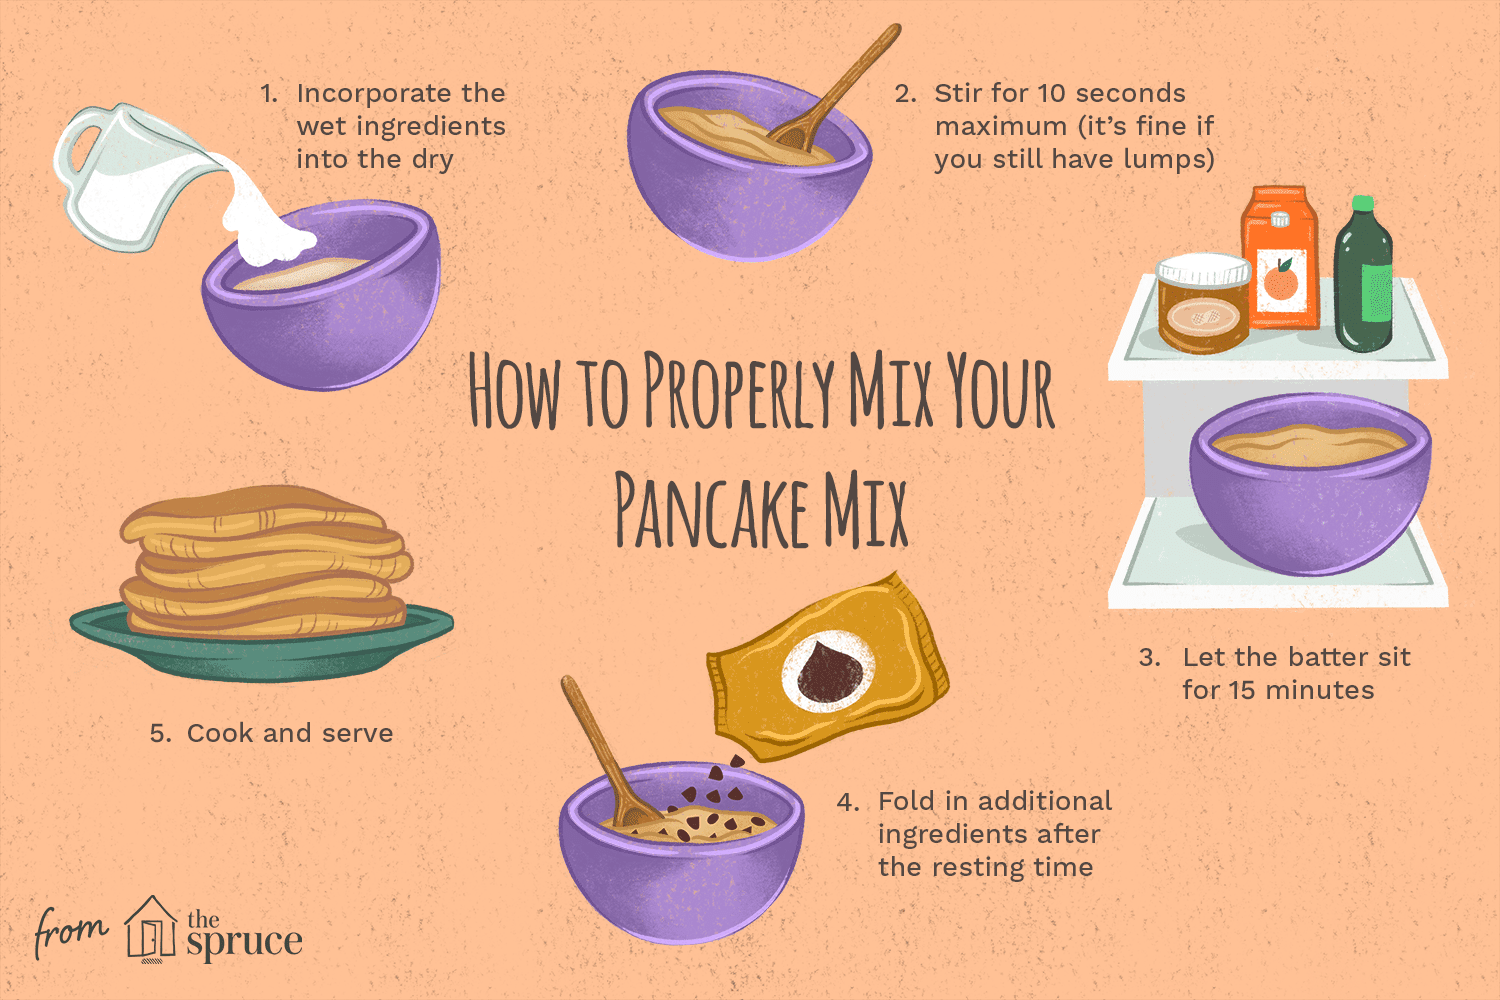 illustration that shows how to properly mix pancake mix